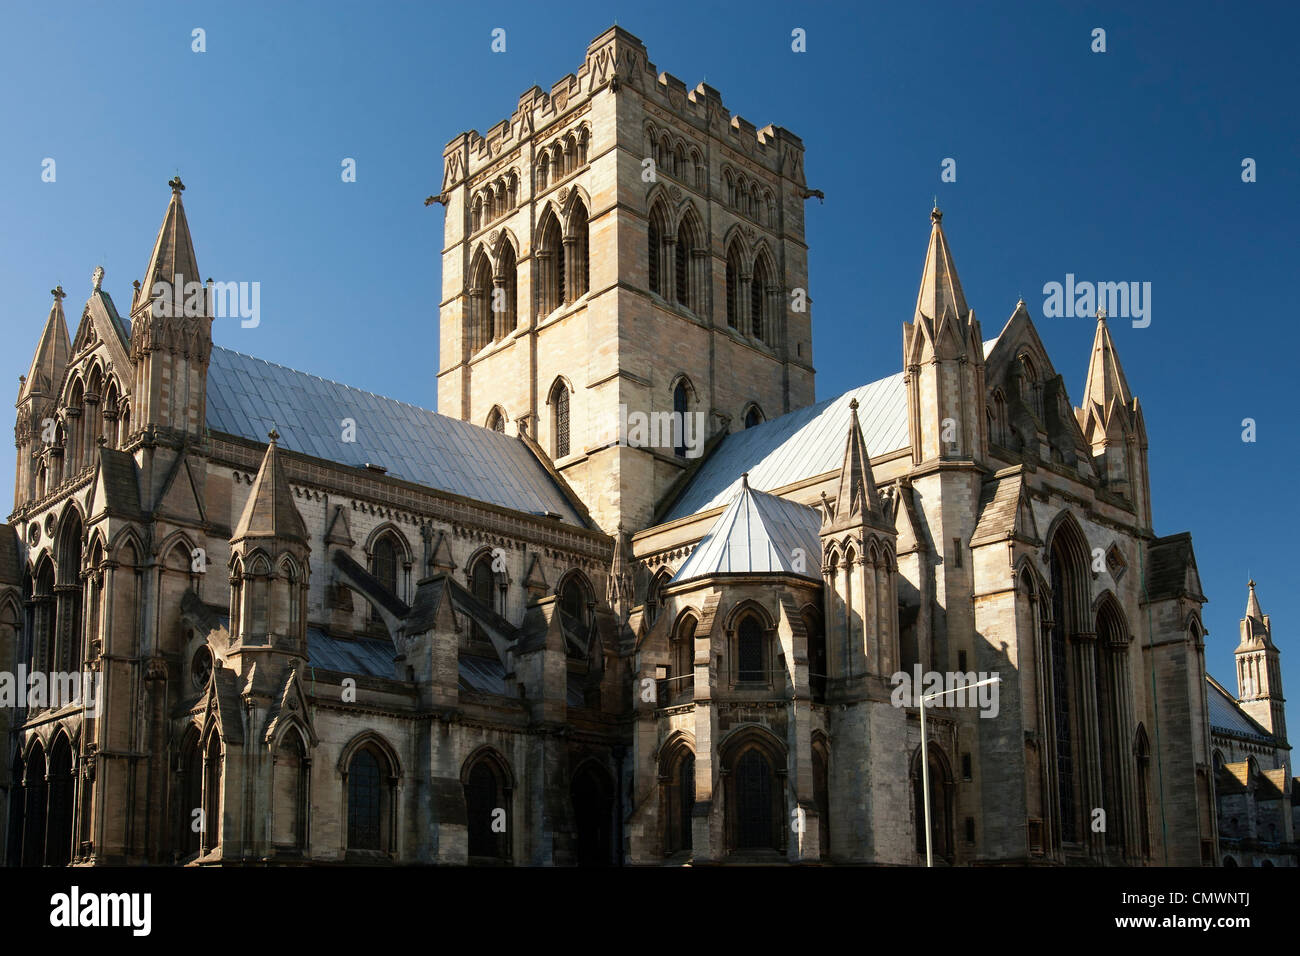 roman catholicism in england essay Nhc home teacherserve divining america 19th century essay: the story of roman catholicism in the nineteenth century is the story of immigration until about 1845, the roman catholic population of the united states was a small minority of mostly english catholics.